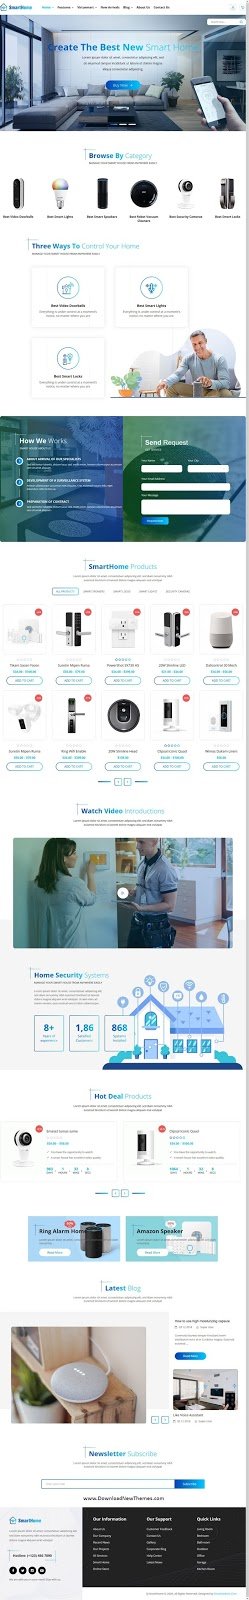 Smart Home Automation & Technologies Joomla Template